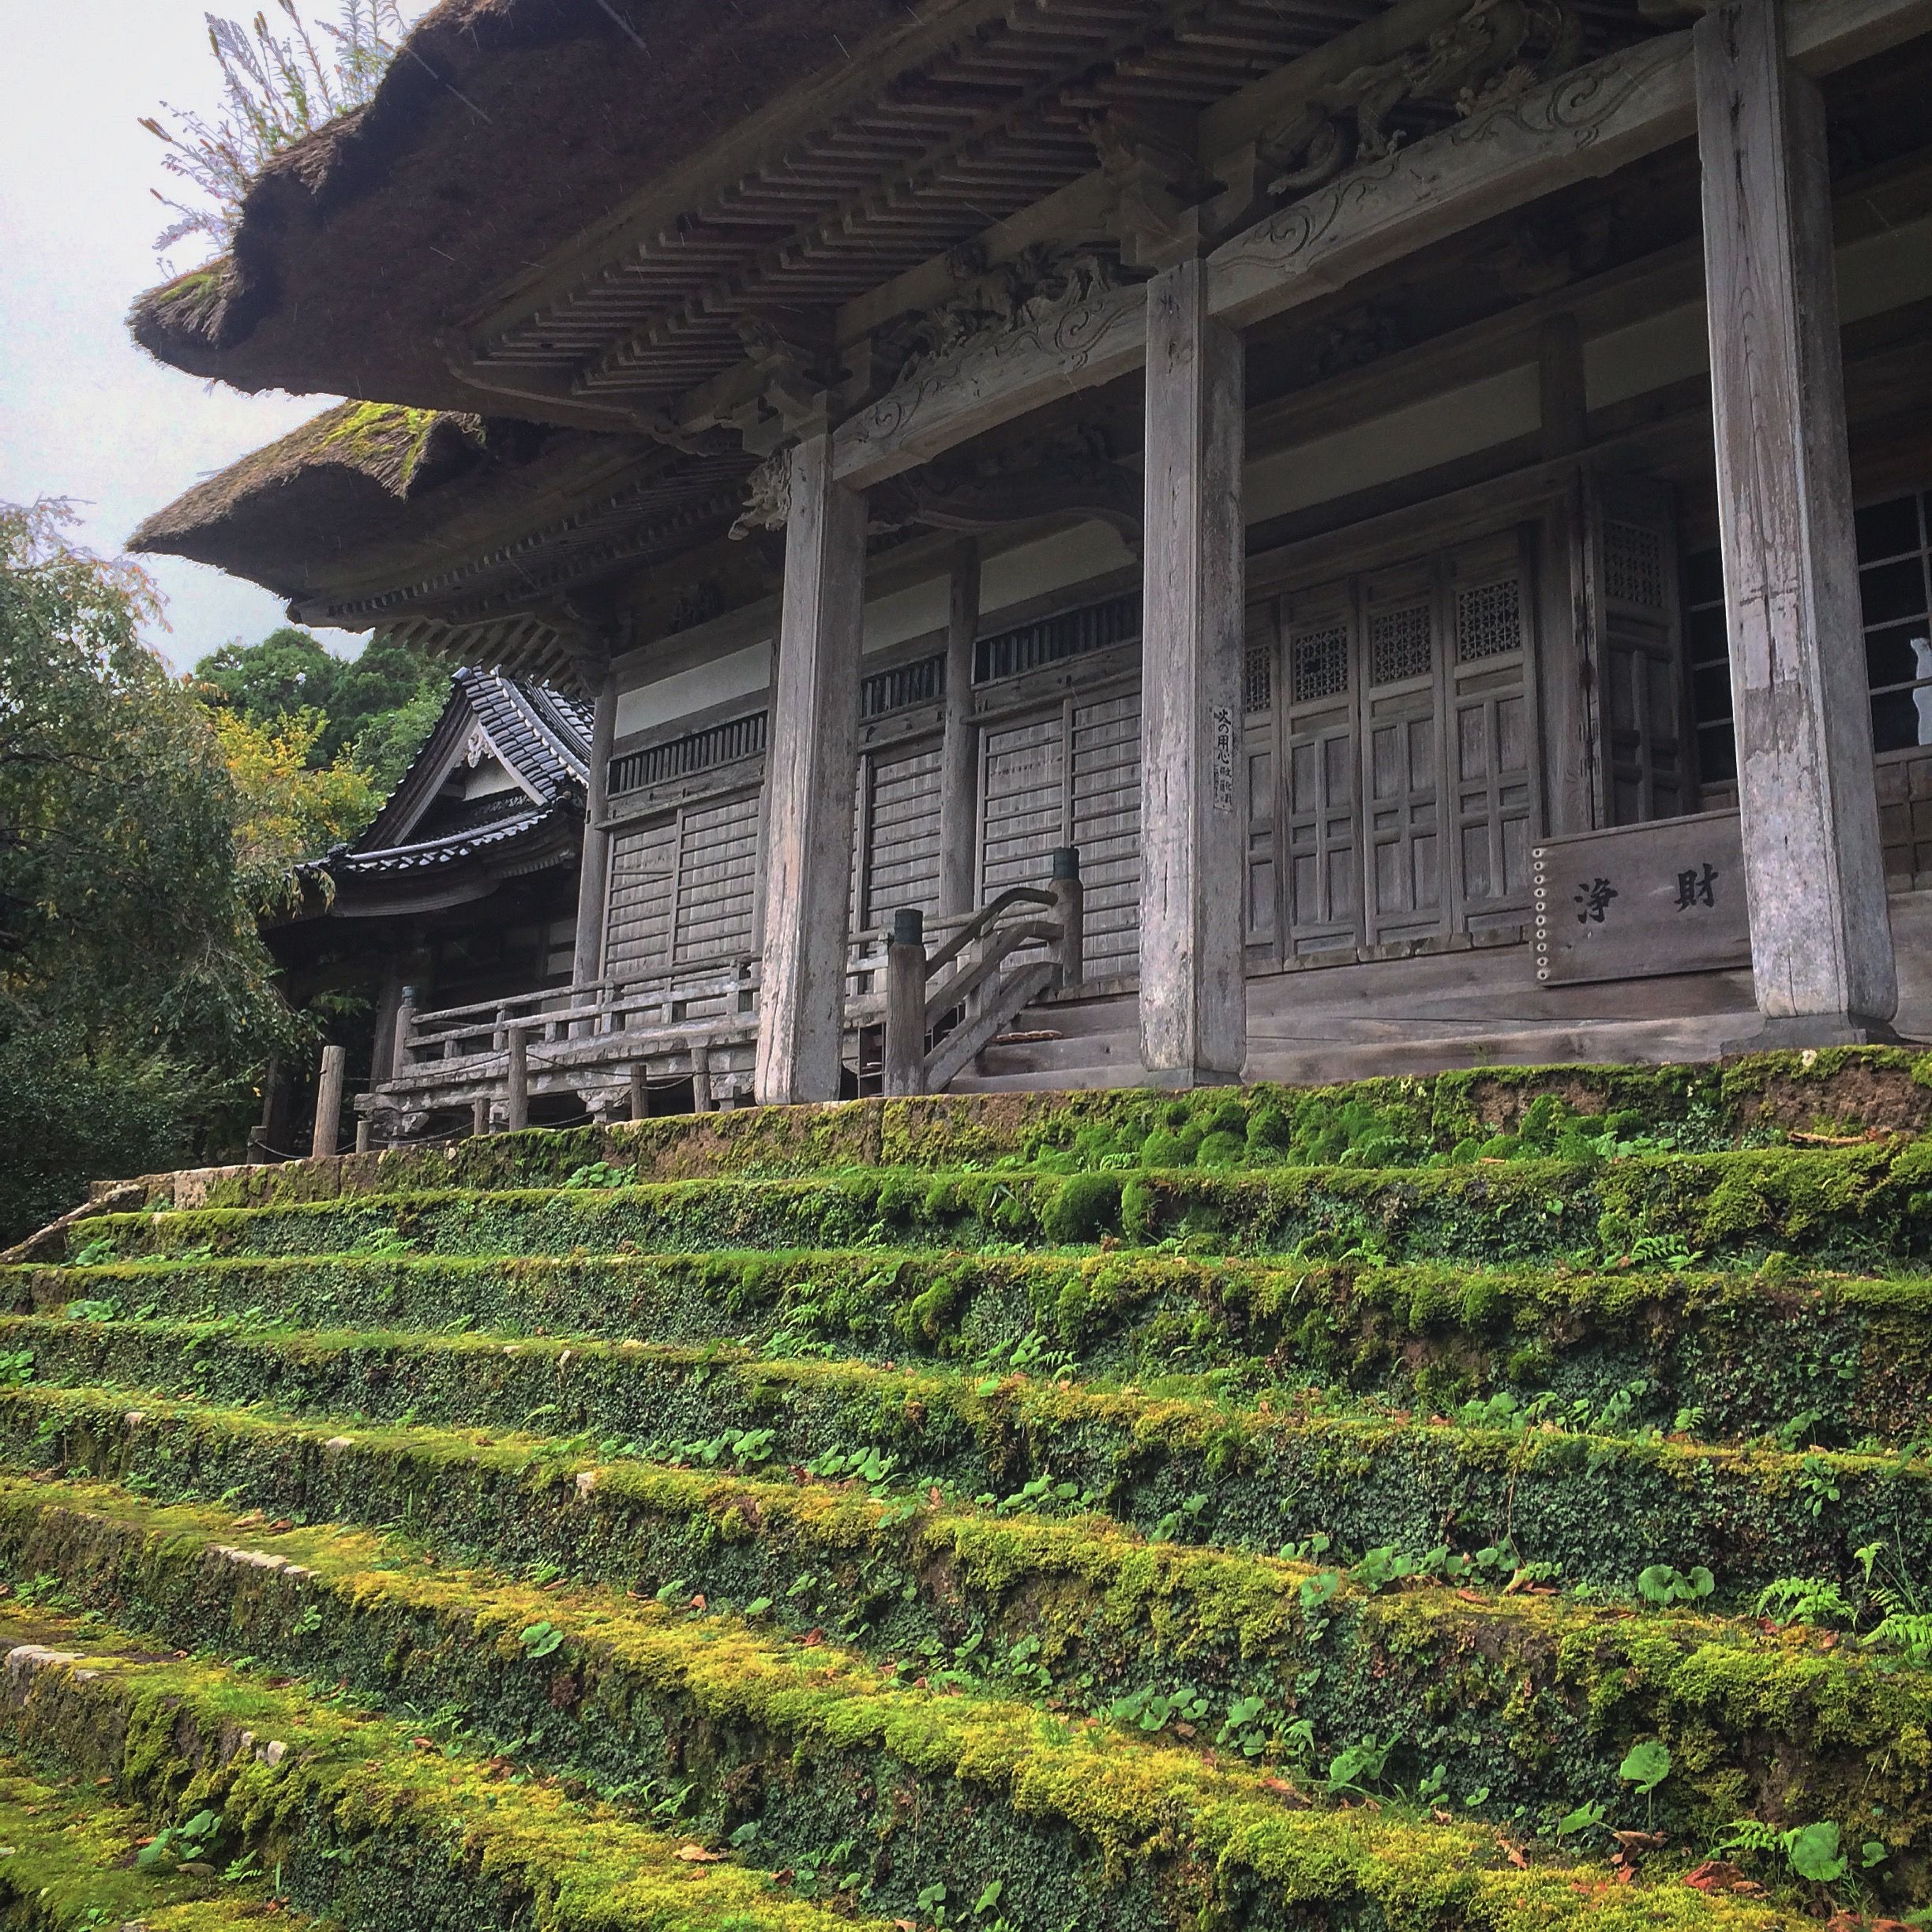 The Agishi Honseiji temple itself, built in the late 1300s, old and sacred.